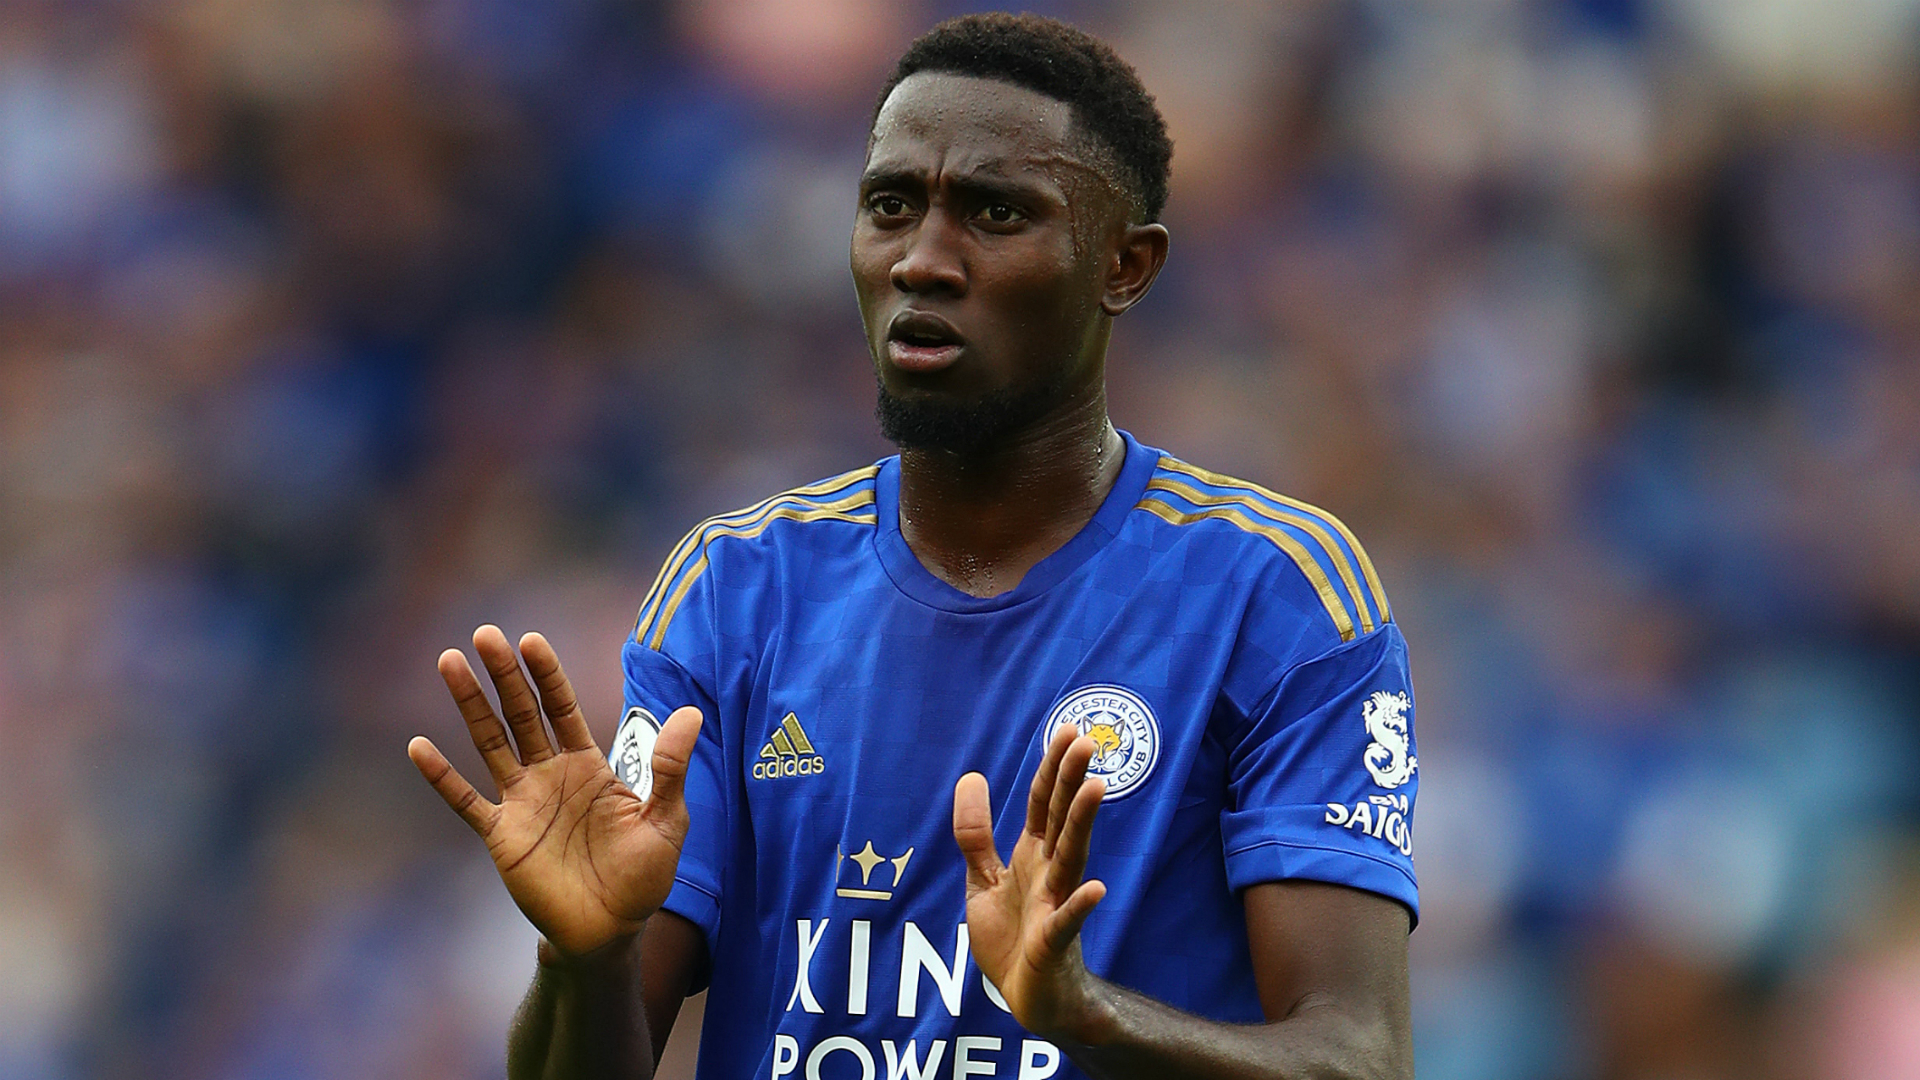 Wilfred Ndidi is not fit enough to return for Leicester City, giving them real midfield concerns ahead of Manchester City's visit.